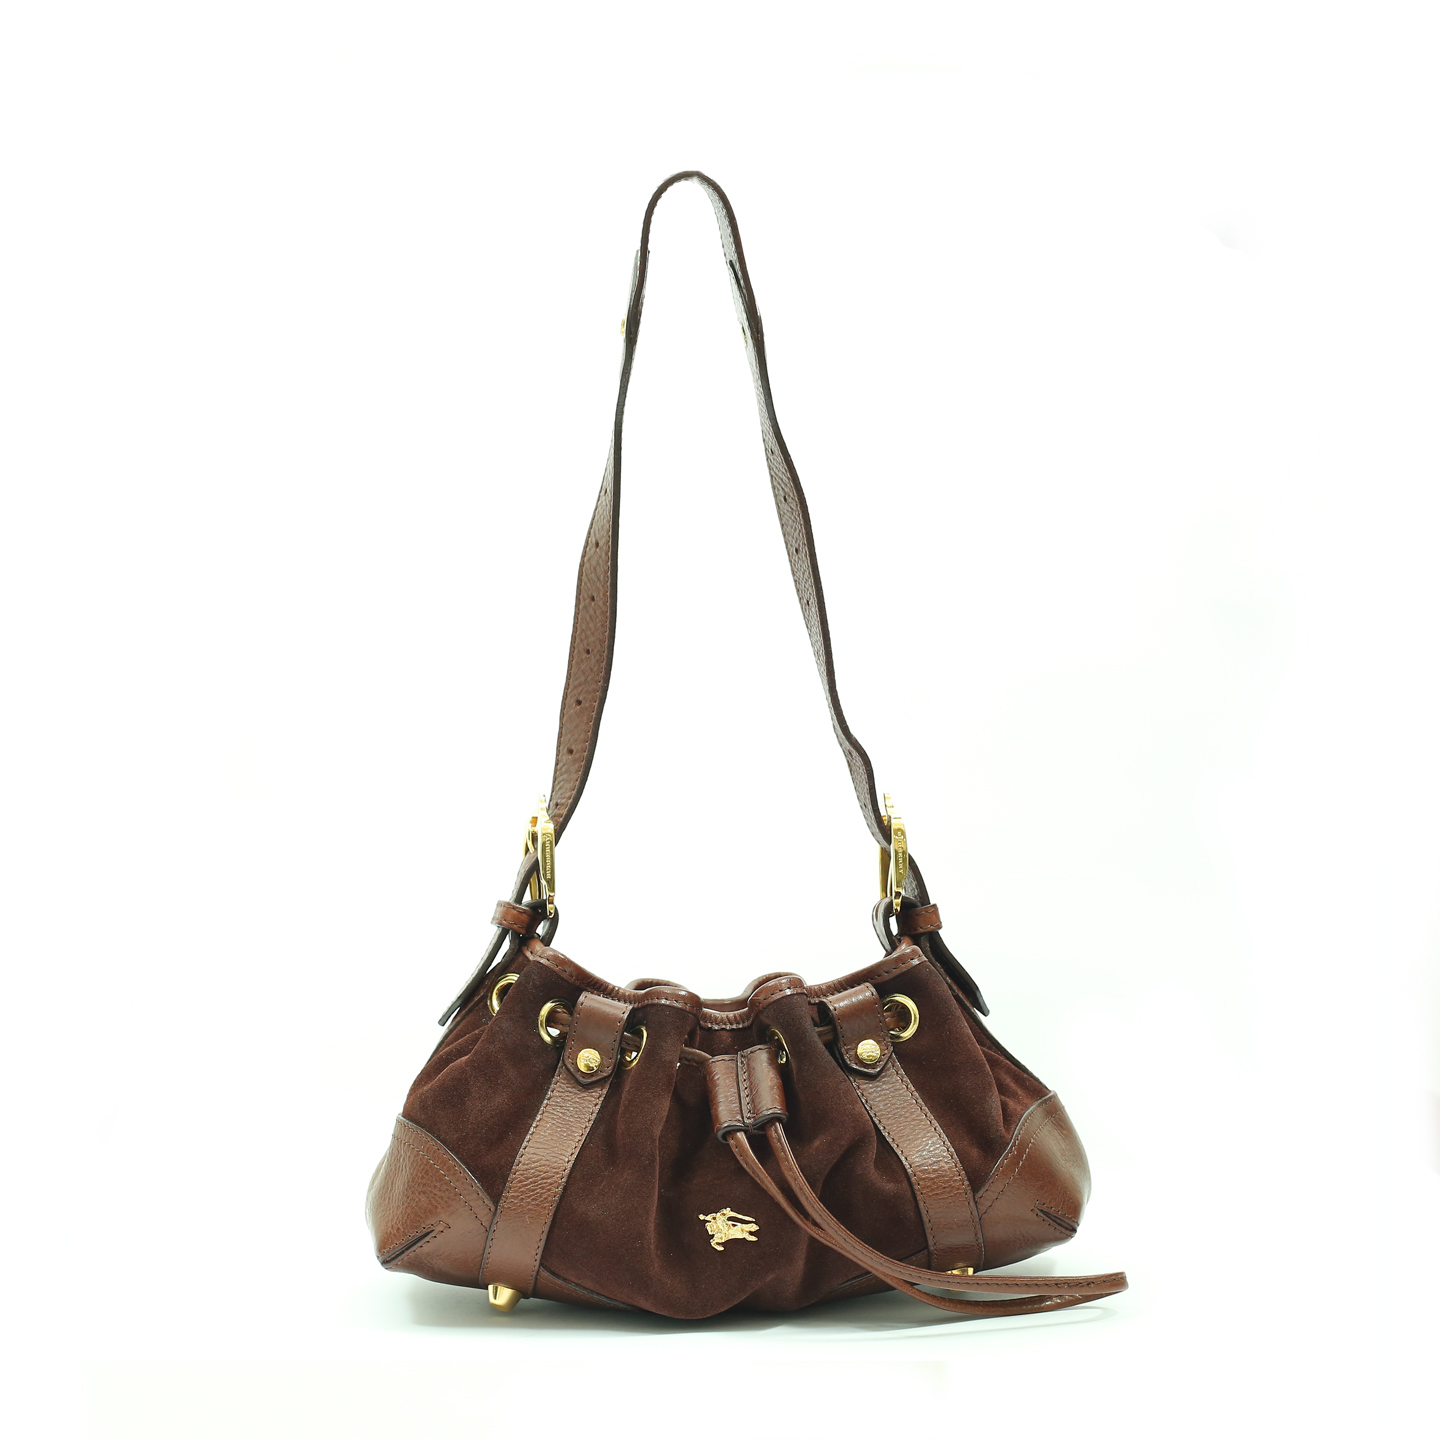 Burberry Brown Suede and Leather Drawstring Hobo